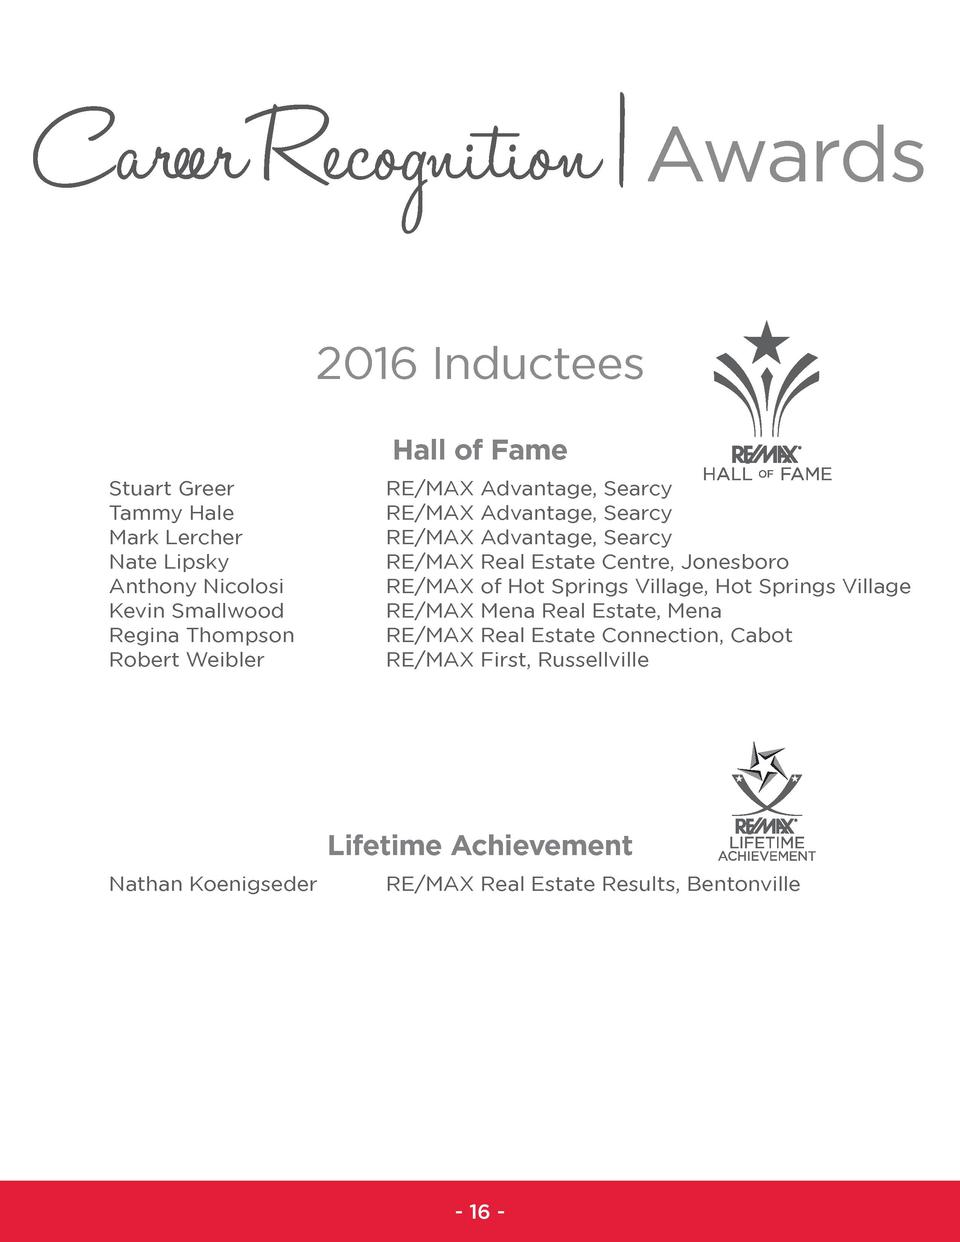 Career Recognition   Awards 2016 Inductees Hall of Fame Stuart Greer Tammy Hale Mark Lercher Nate Lipsky Anthony Nicolosi ...